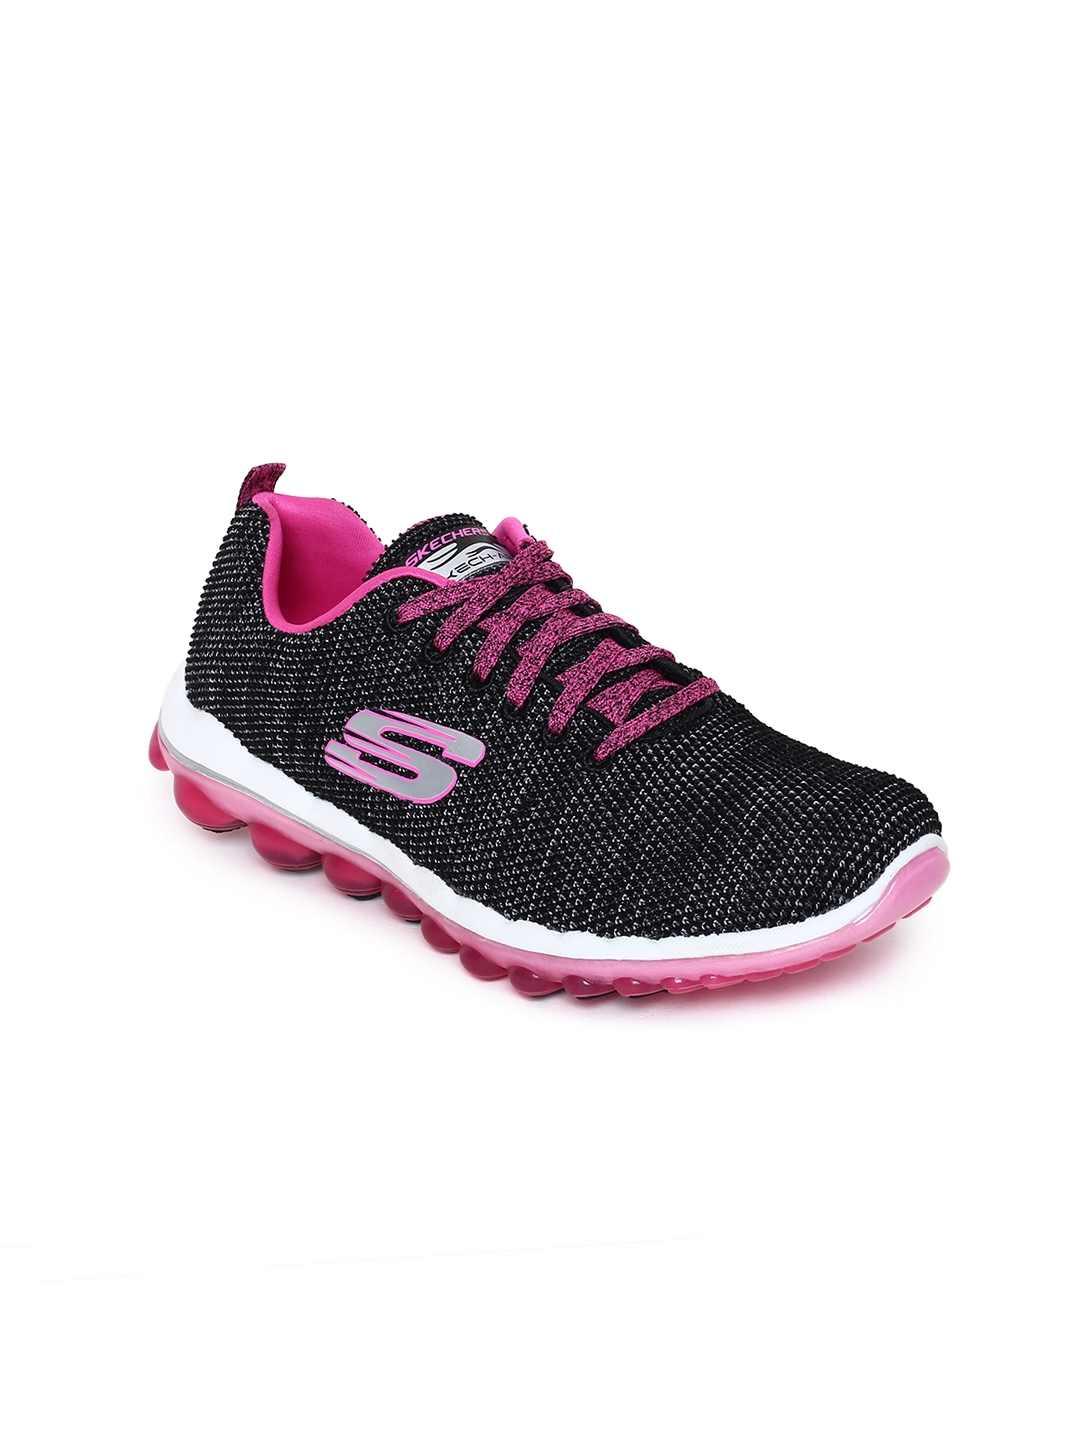 d27be63fd299 Buy Skechers Women SKECH AIR 2.0 Black Sneakers - Casual Shoes for ...